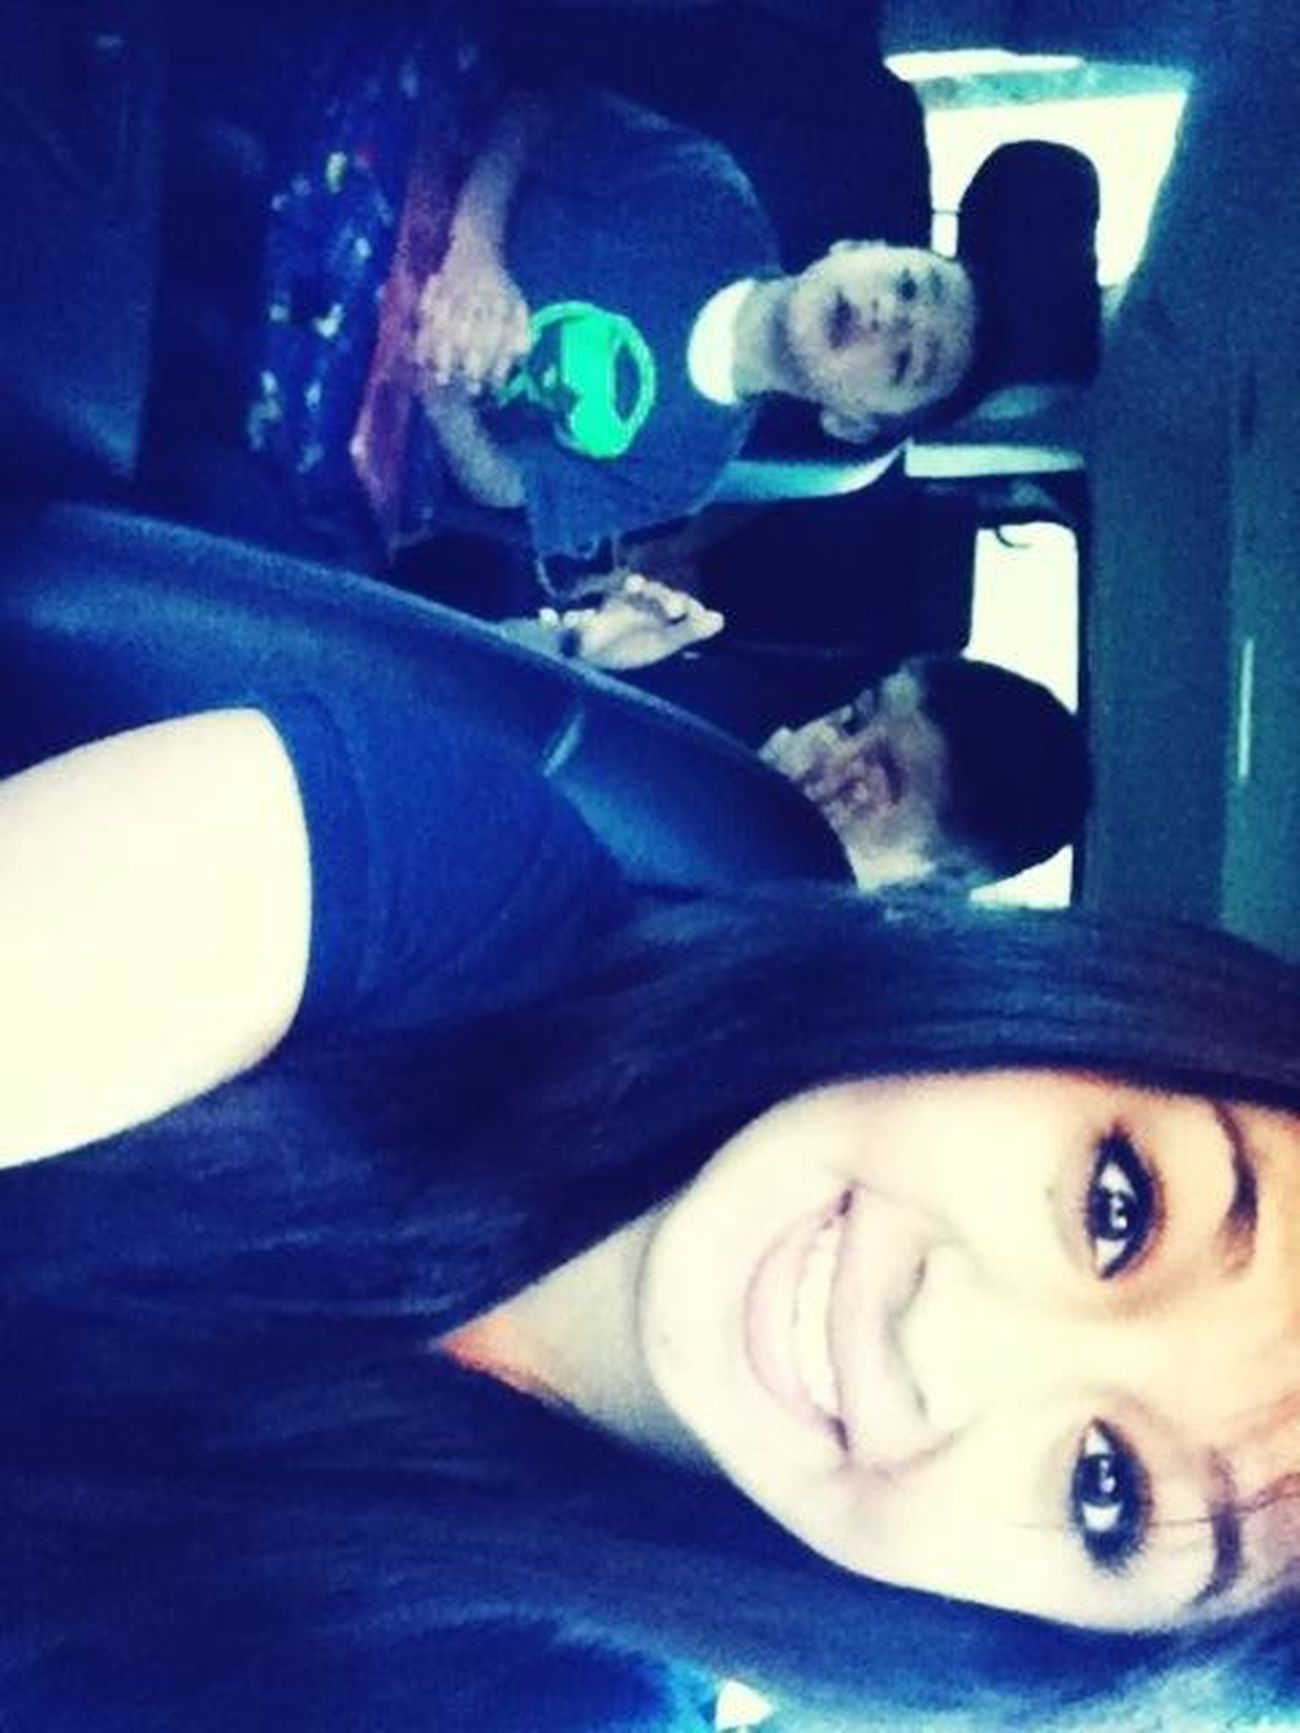 Me And My Boogers Going To School(: